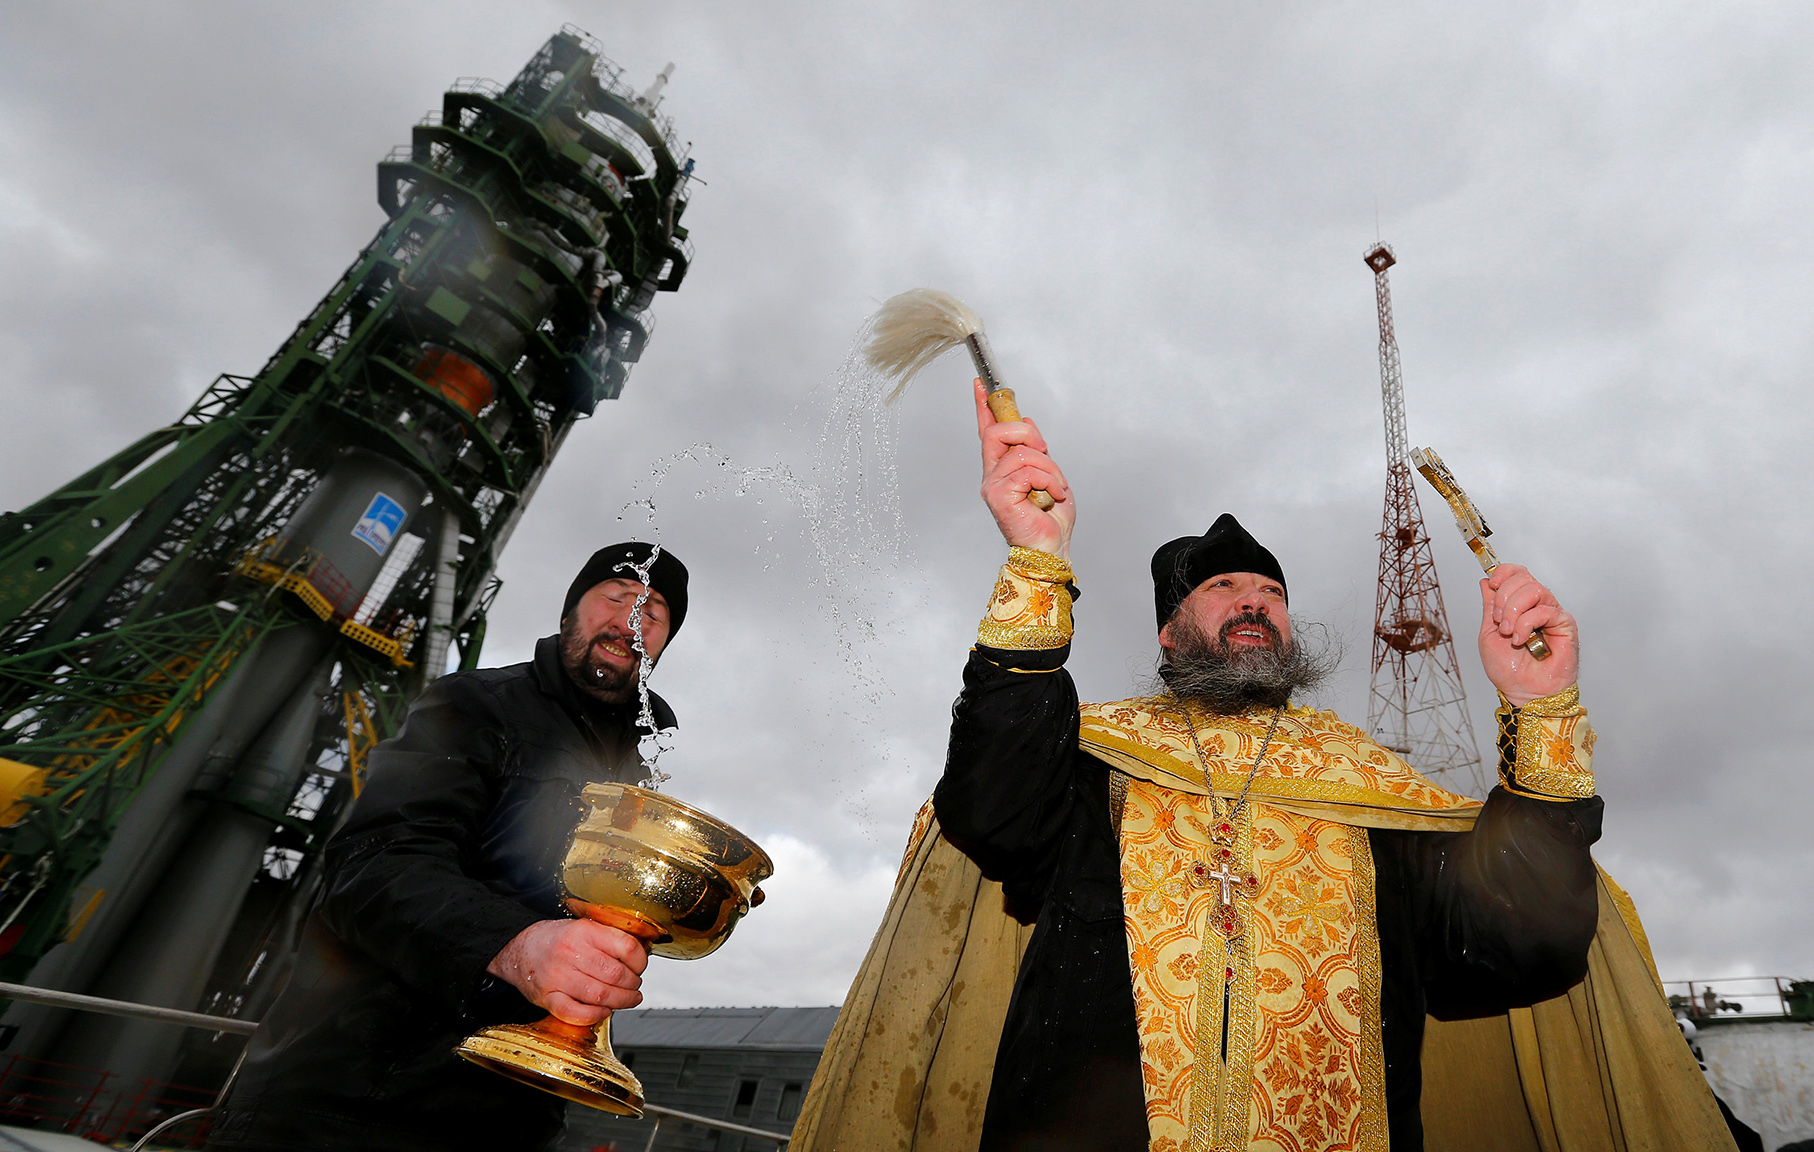 An Orthodox priest conducts a blessing in front of the Soyuz MS-02 spacecraft set on the launch pad at Baikonur cosmodrome